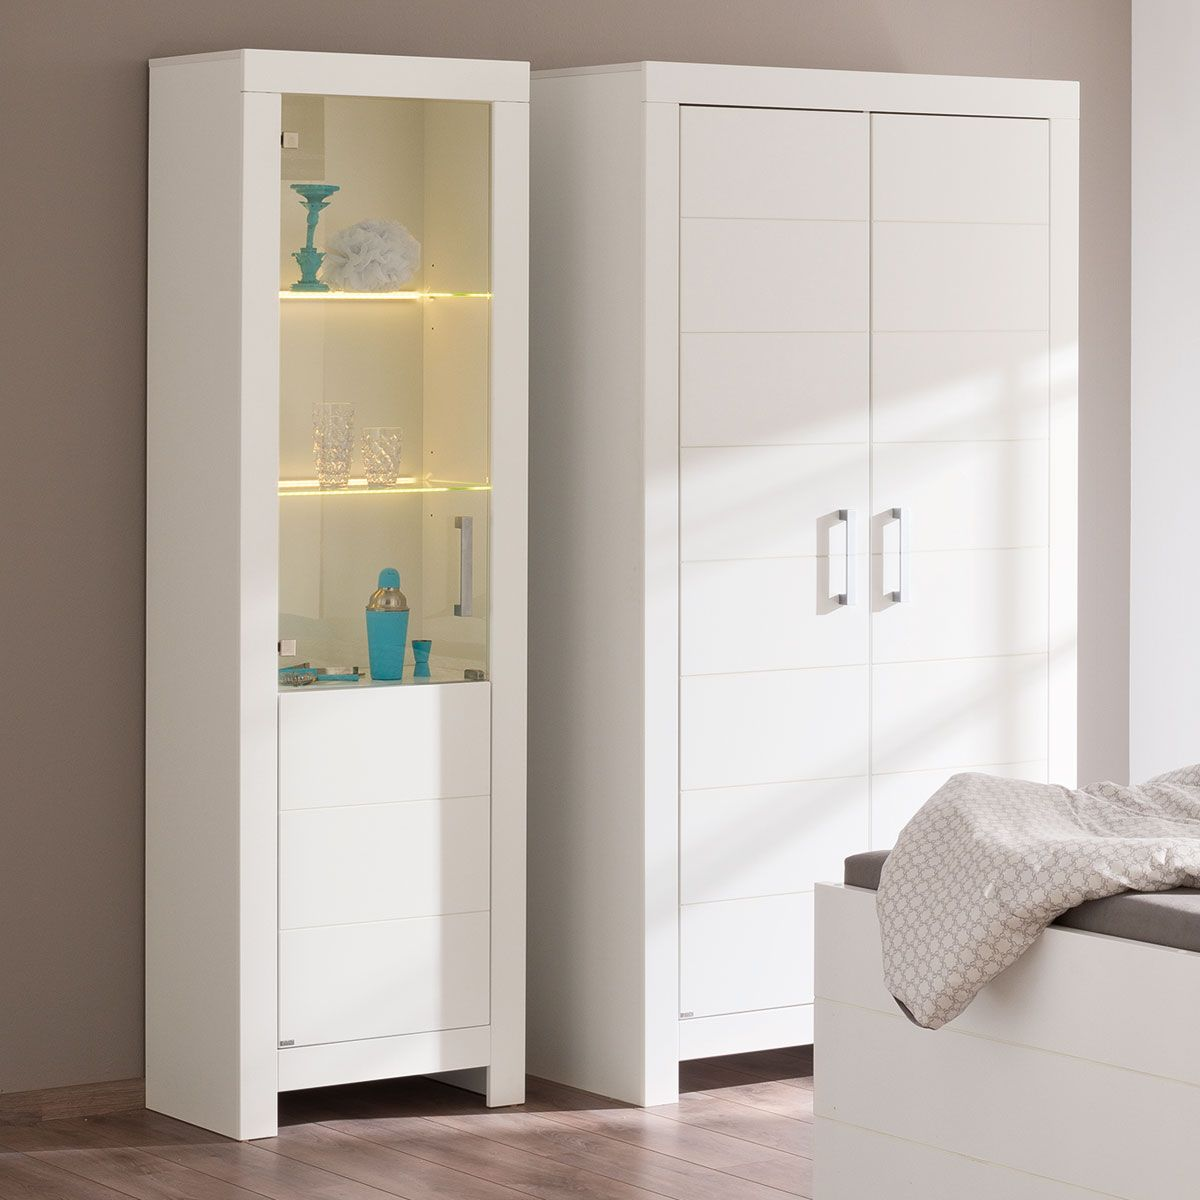 paidi fiona wandregal paidi babyzimmer fiona paidi fiona ta rig breit griffe glanzend paidi. Black Bedroom Furniture Sets. Home Design Ideas